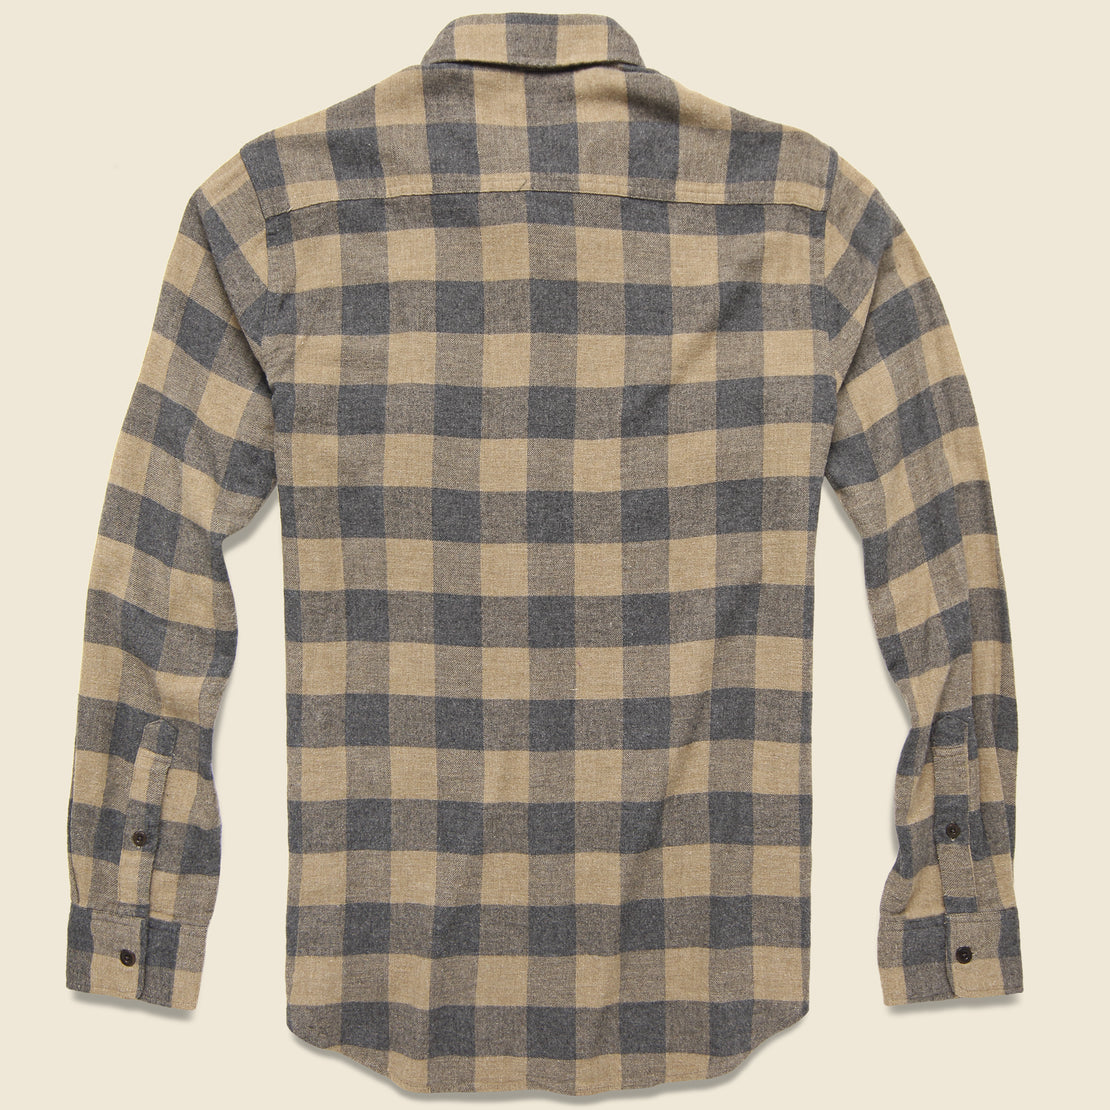 Brushed Alpine Flannel - Sand Charcoal Buffalo